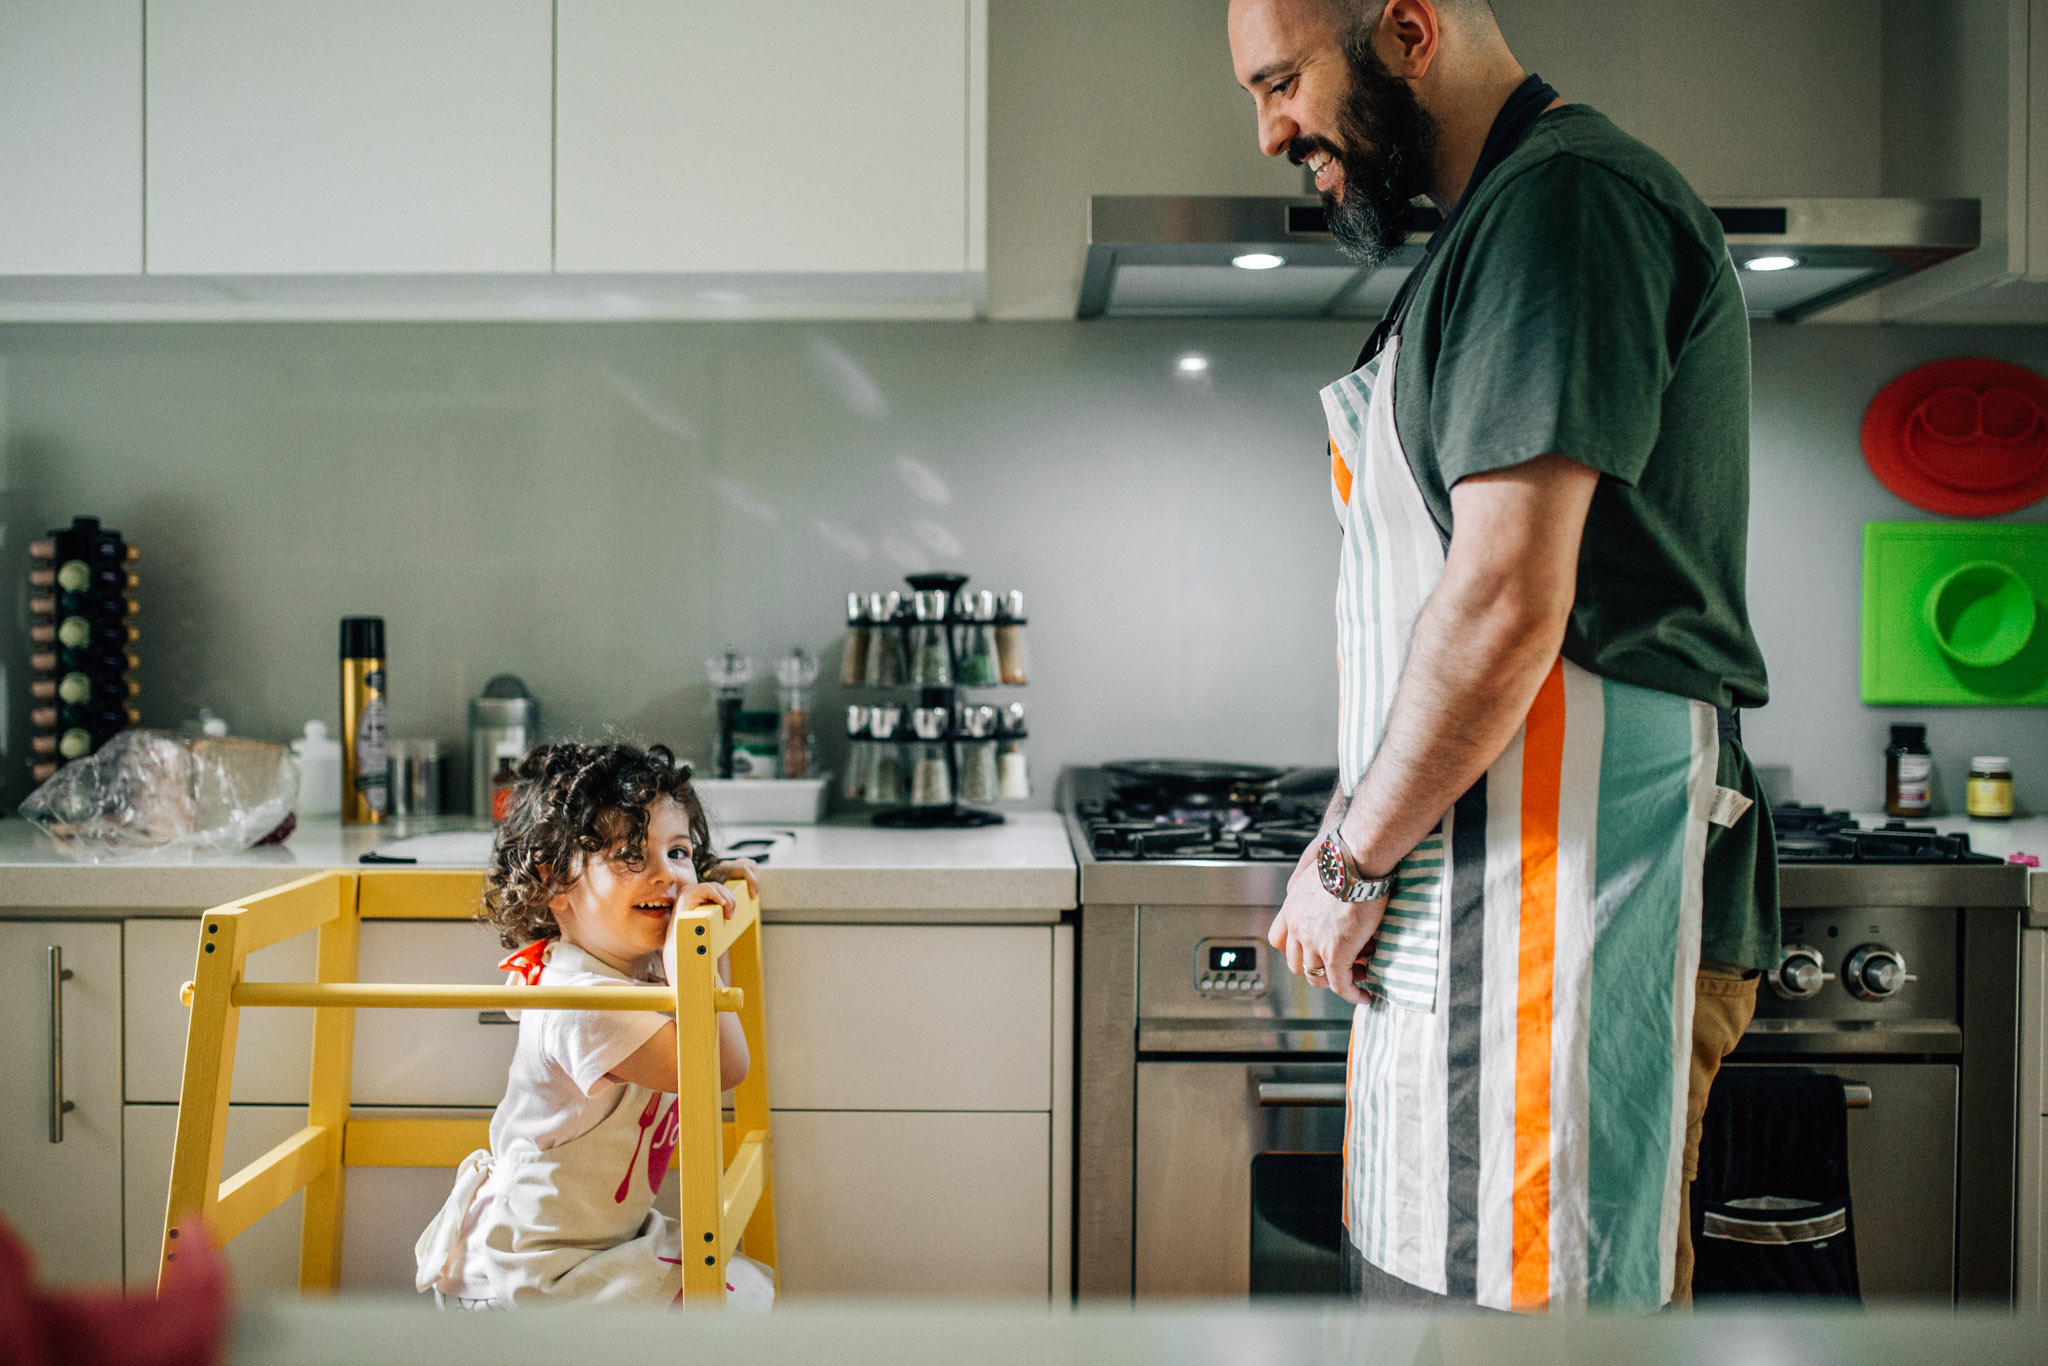 toddler-girl-squatting-on-learning-tower-in-kitchen-with-father (1 of 1).jpg